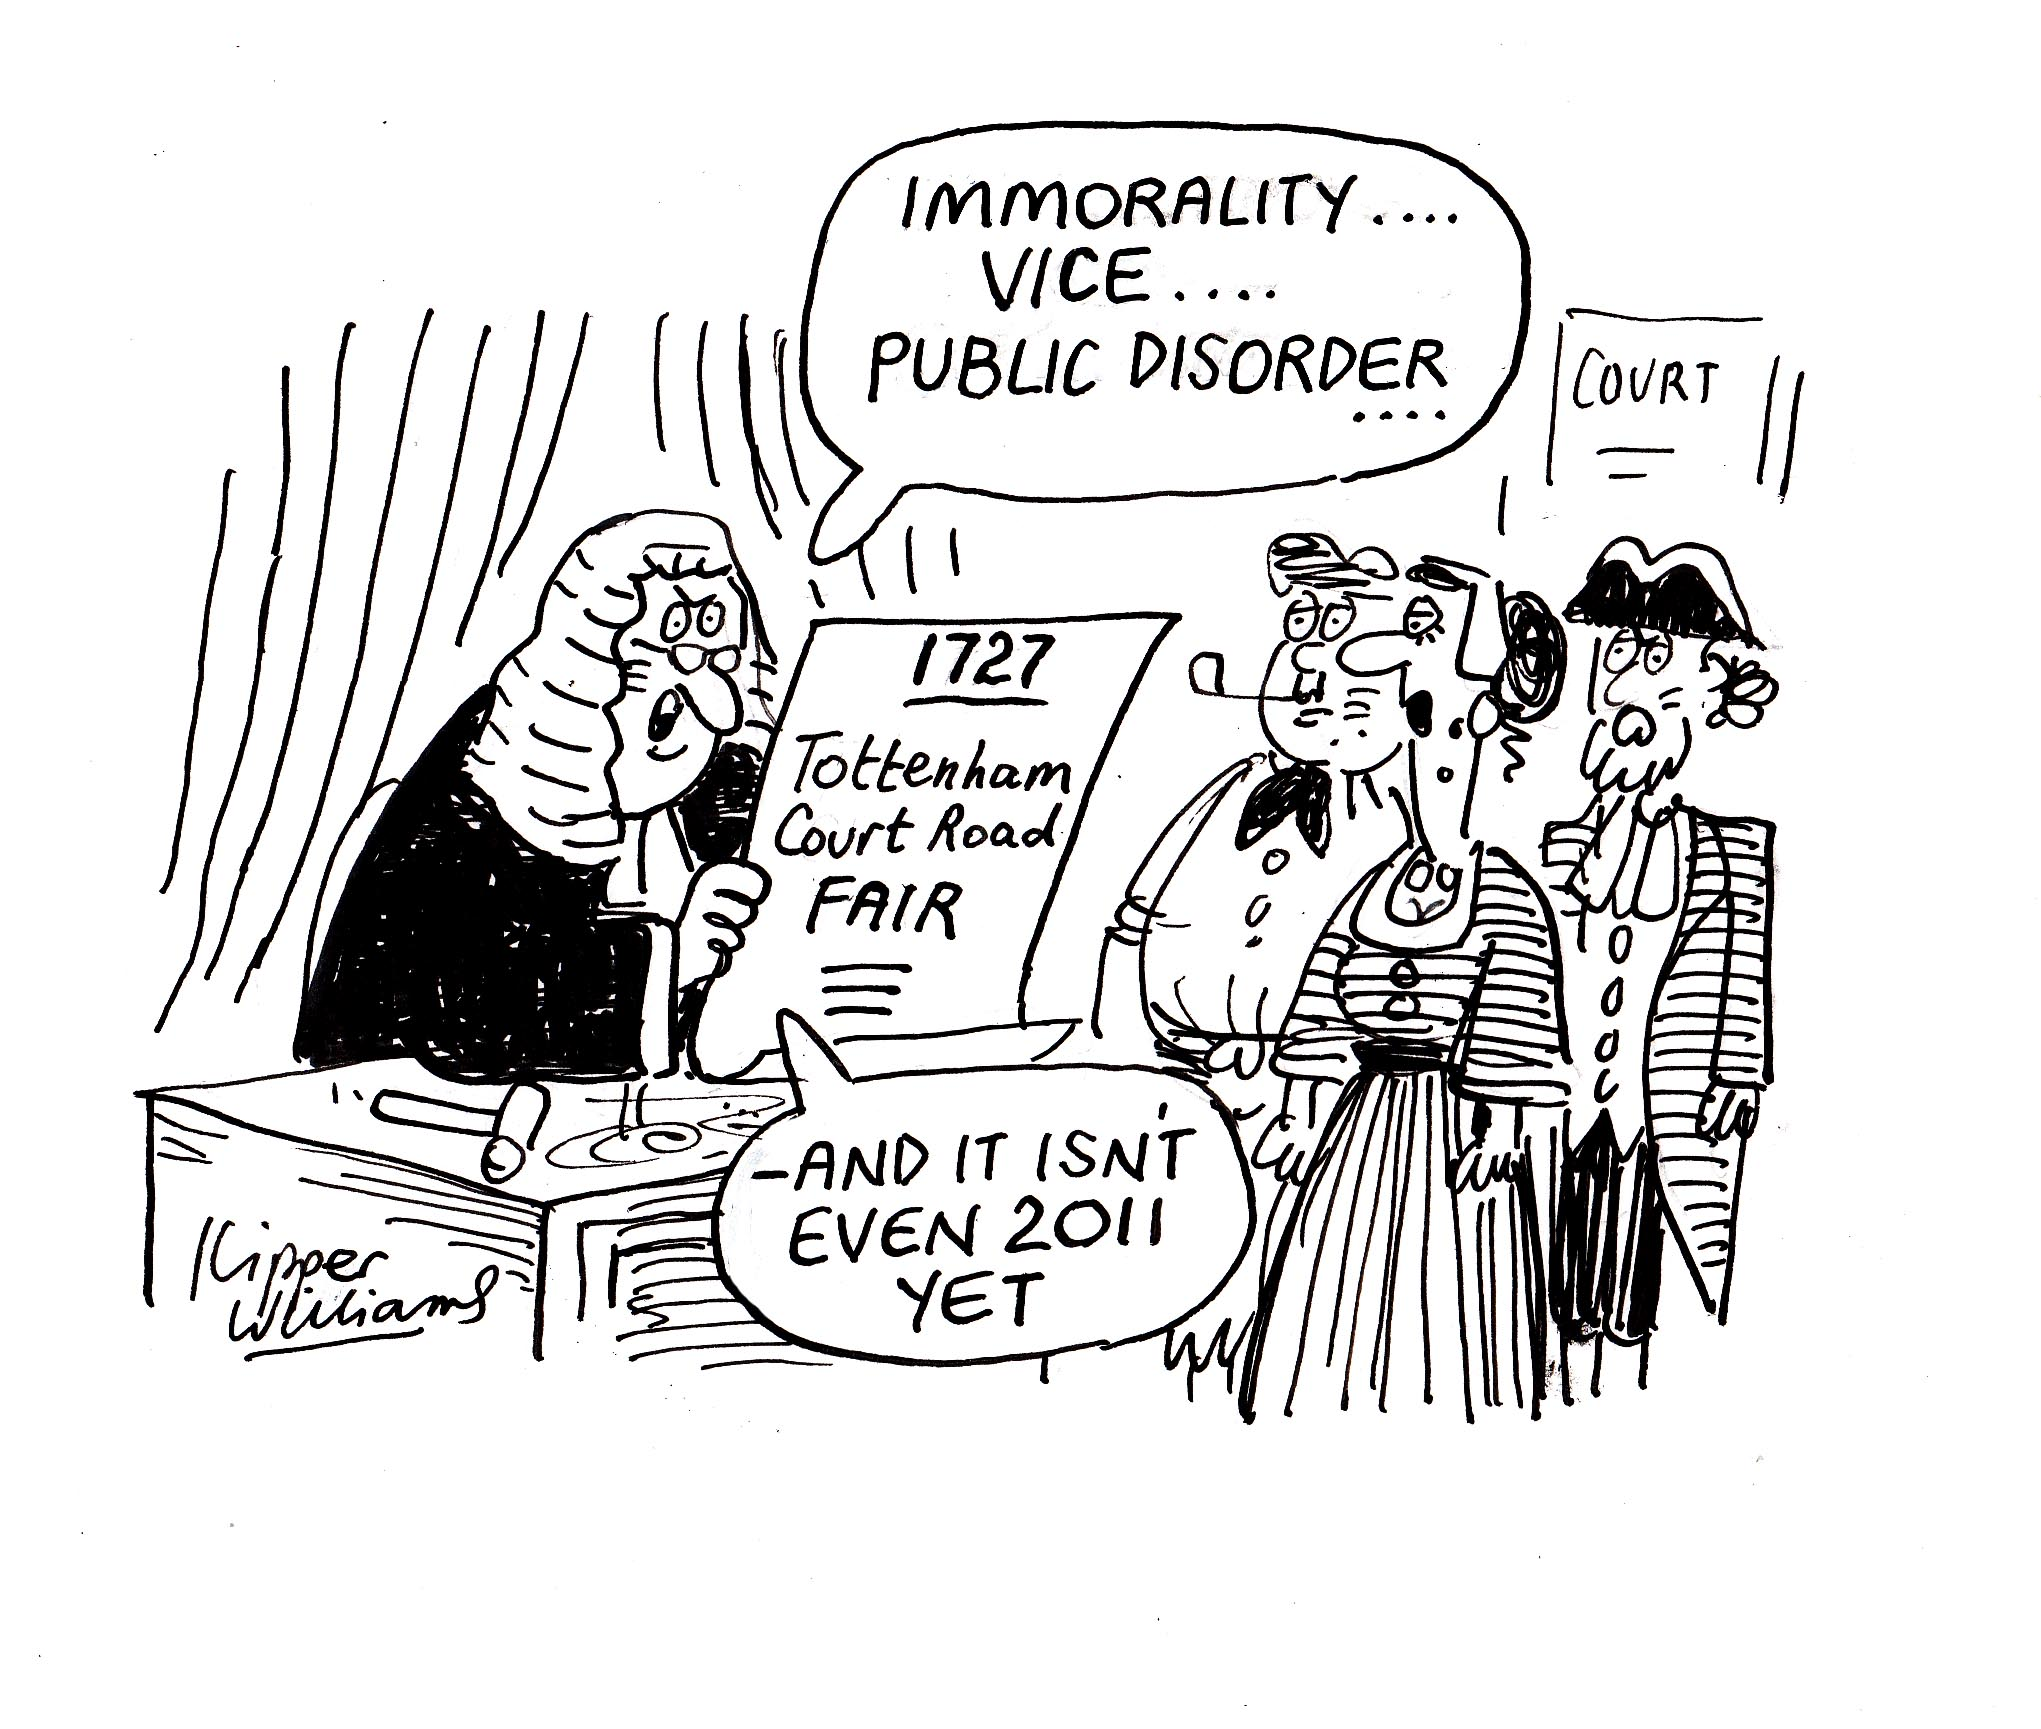 "Cartoon depicting judge in 1727 reading out charges and saying: ""Immorality... Vice... Public disorder... — and it isn't even 2011 yet."""